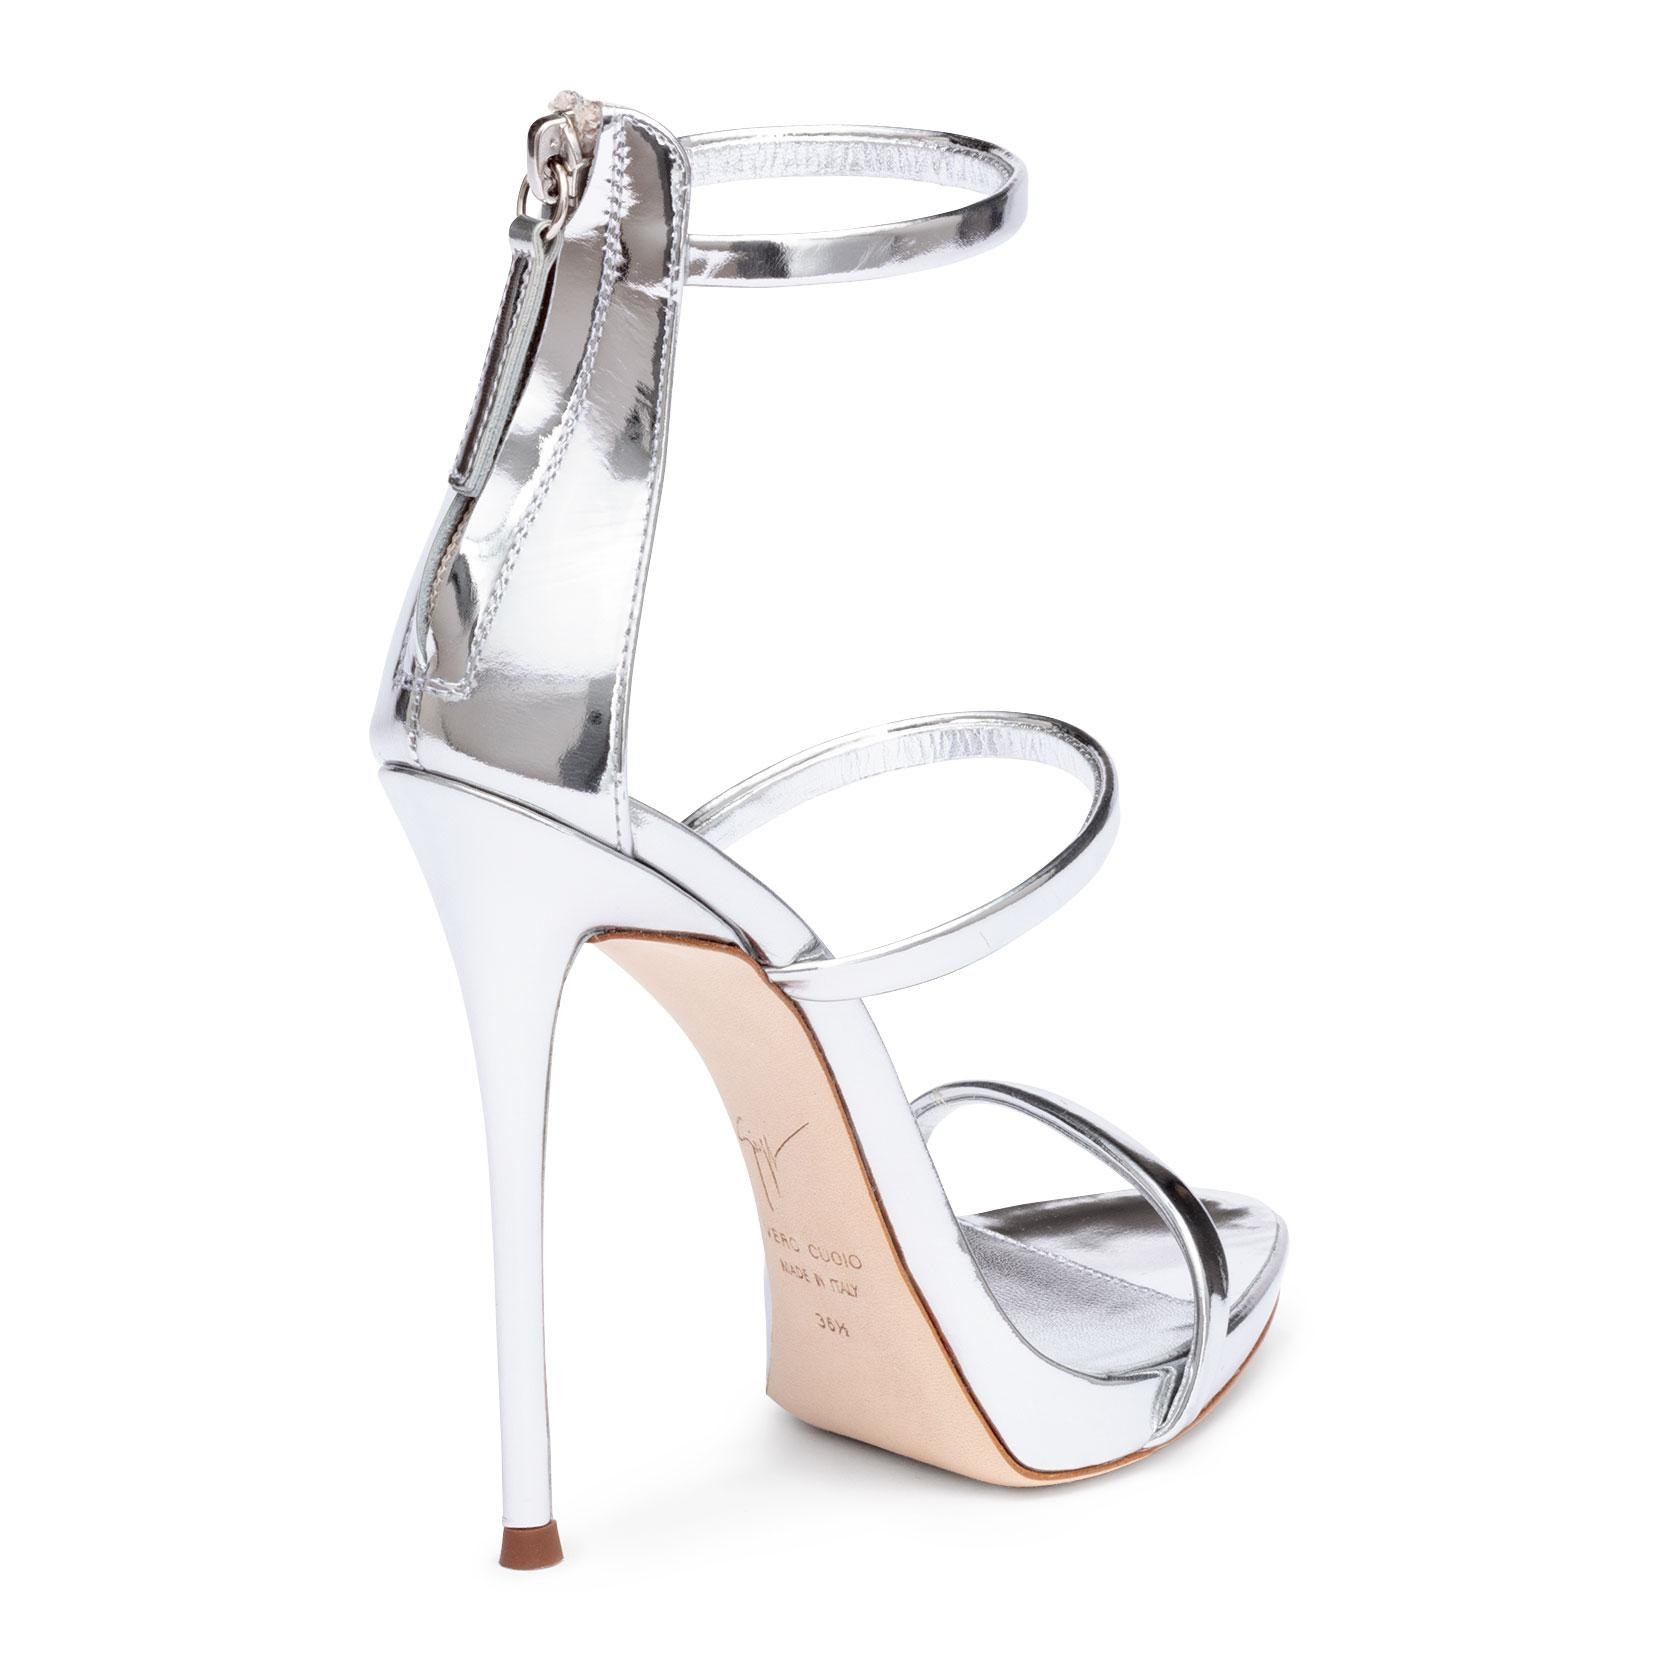 Harmony 120 silver metallic leather sandals Giuseppe Zanotti Discount Reliable Real Free Shipping Pay With Visa Buy Cheap Fashionable Limited Edition Cheap Price IVSx0cTvhm